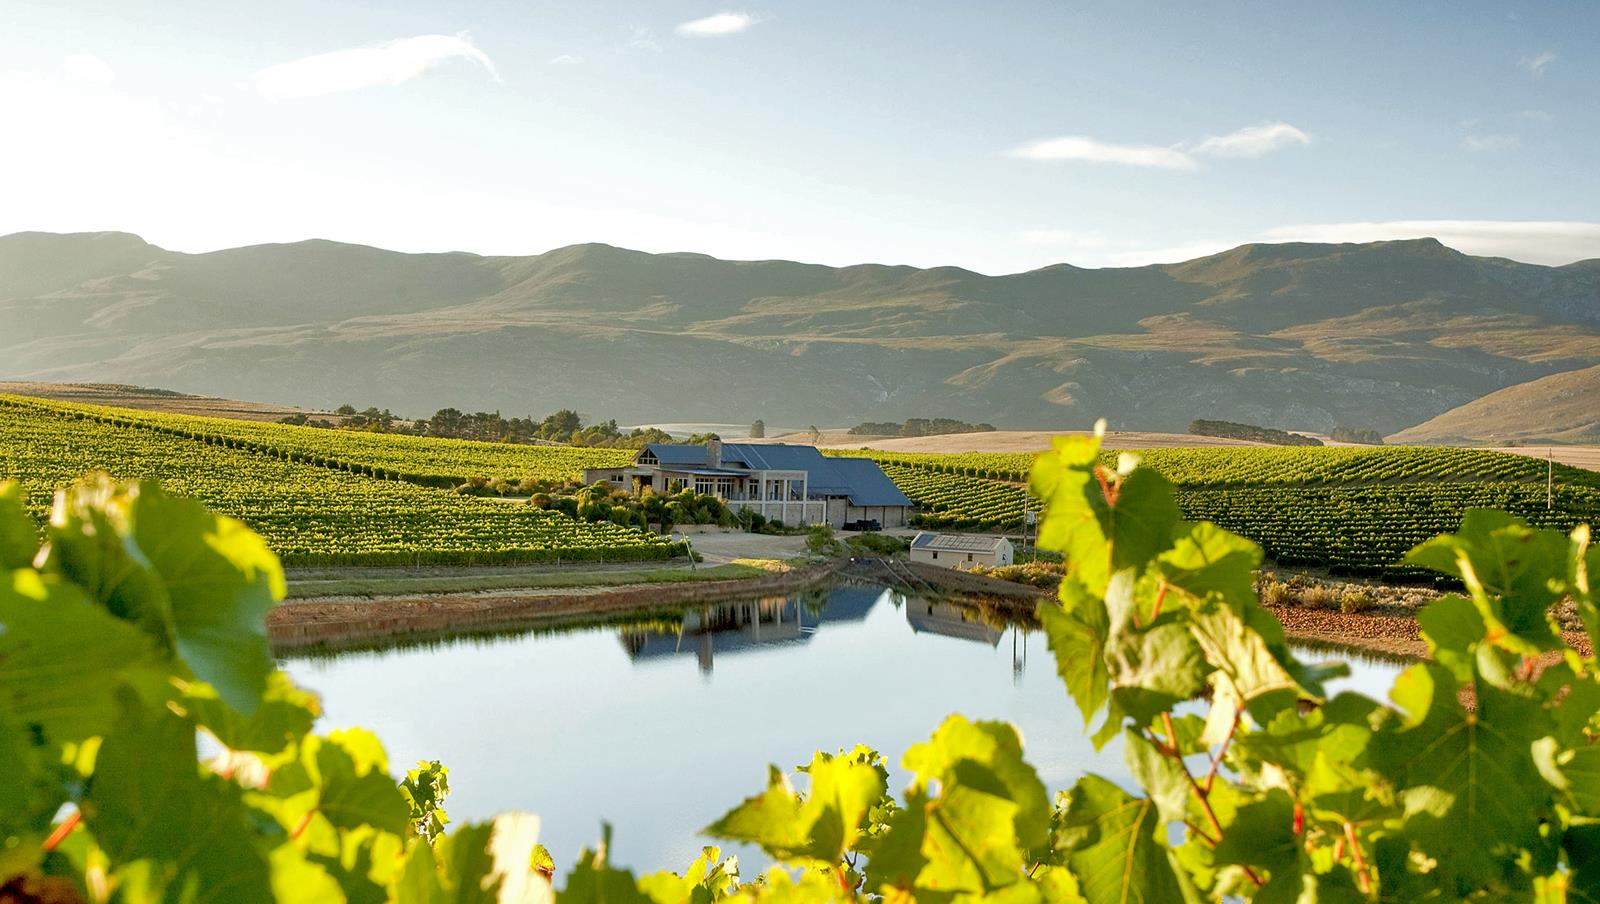 Creation Vineyard/Image source: www.creationwines.com